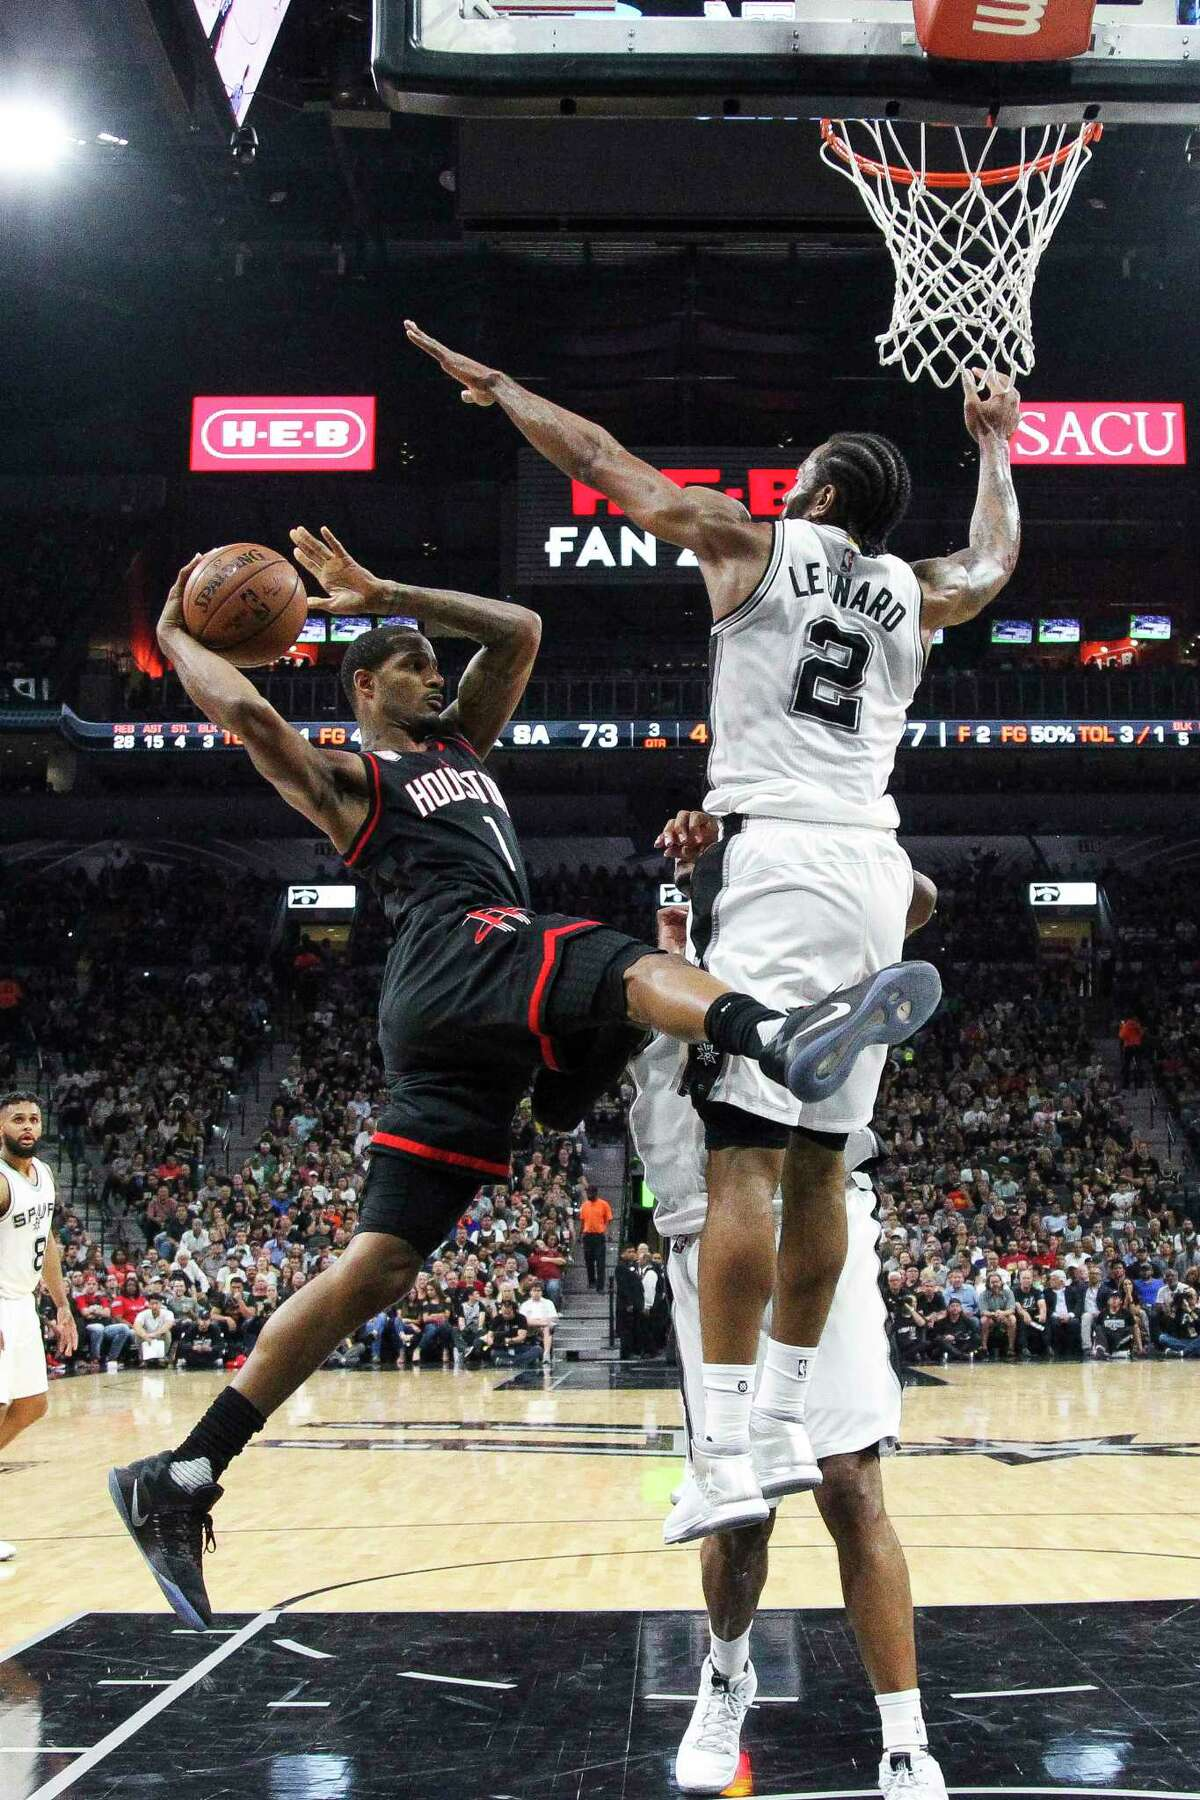 San Antonio Spurs forward Kawhi Leonard (2) jumps up to block Houston Rockets forward Trevor Ariza (1) during overtime of Game 5 of the second round of the Western Conference NBA playoffs at AT&T Center, Tuesday, May 9, 2017, in San Antonio.